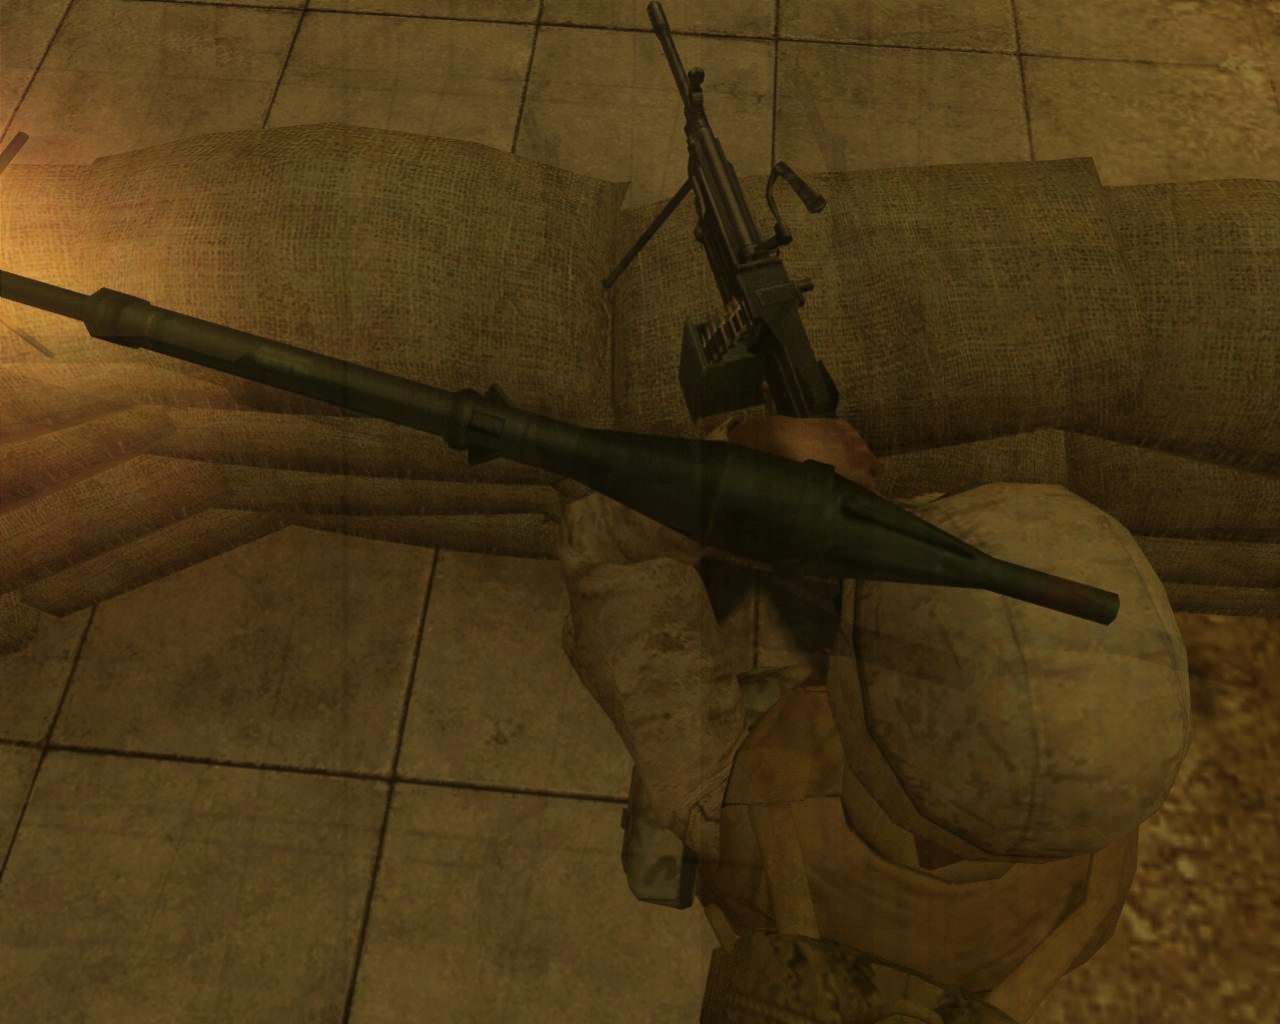 http://hysterxxx.free.fr/Games/Half%20Life%202/Insurgency/Screenshot%20Contest%20Entries/1/2%20Contest.png